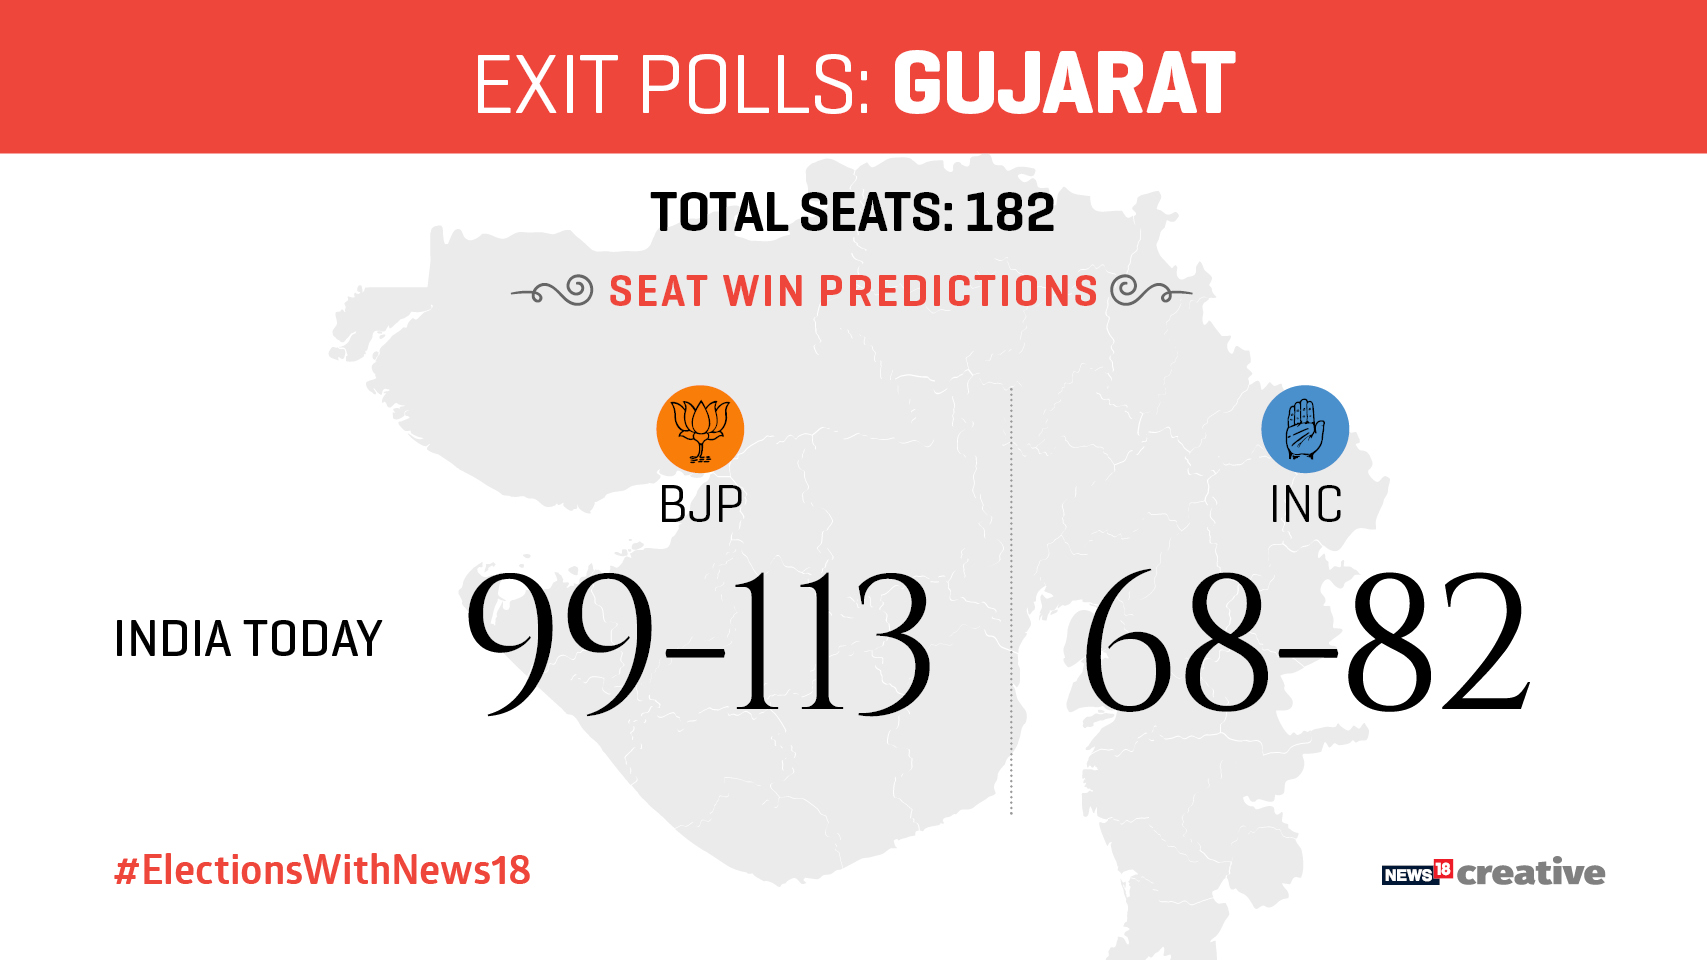 Exit polls project a BJP win in Gujarat, Himachal Pradesh